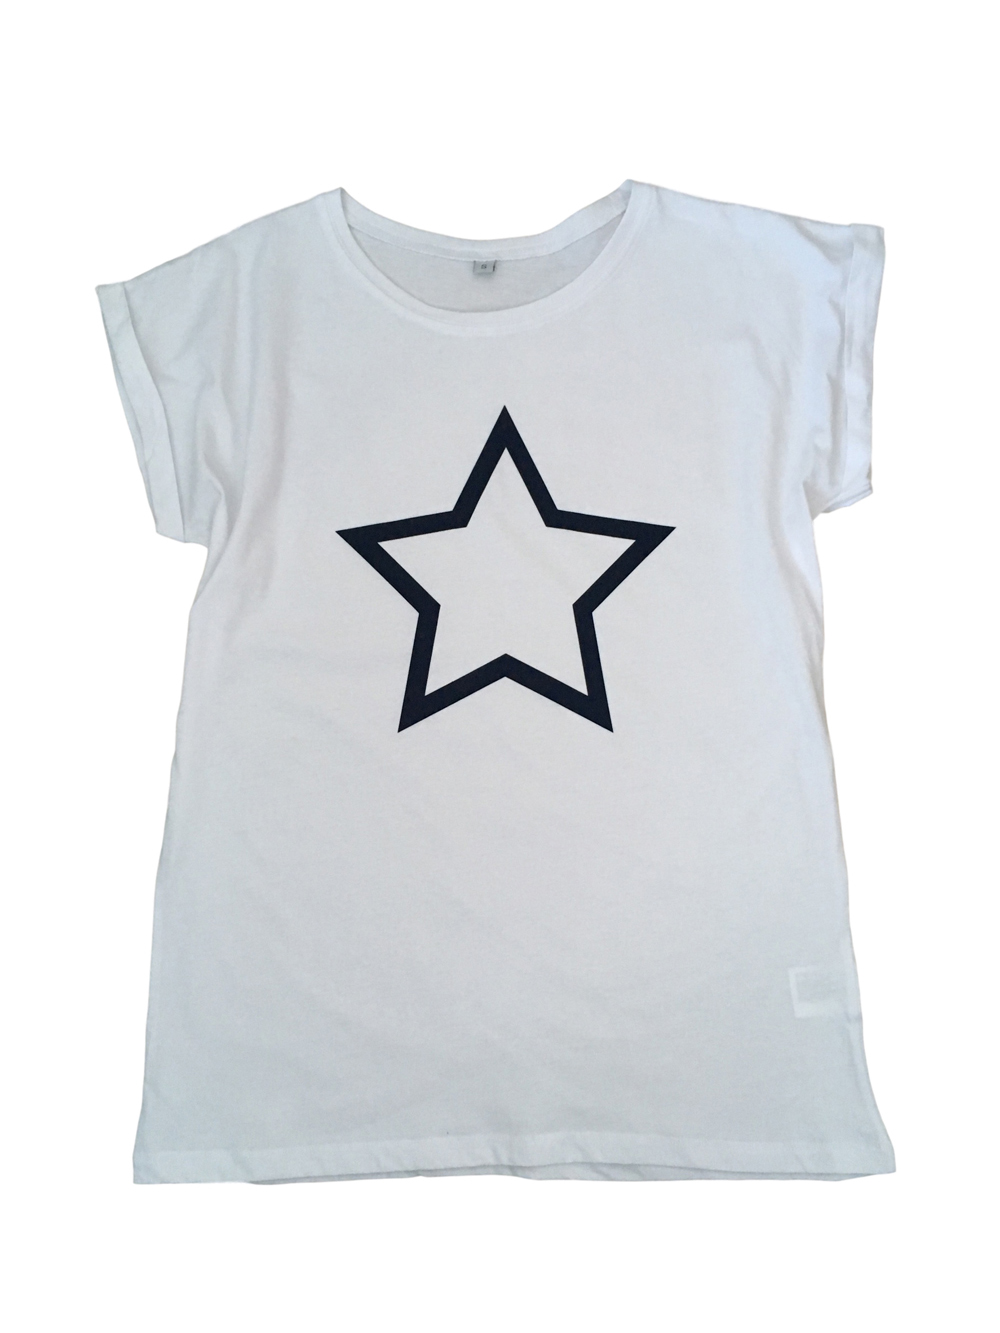 ADULT – White/navy Star T-shirt – Small